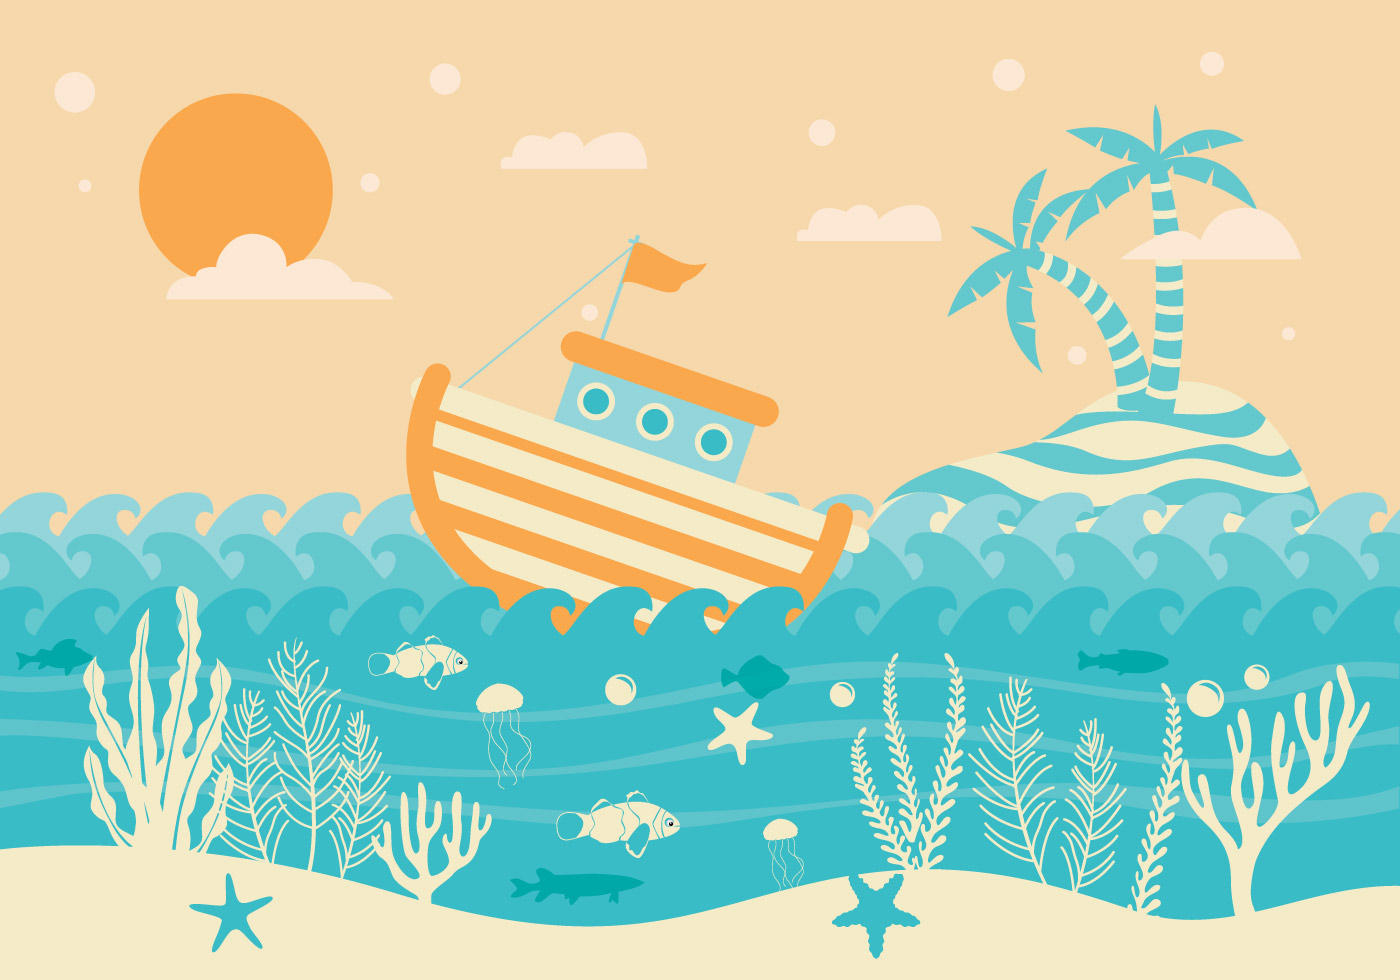 sea bed beach vector - photo #8